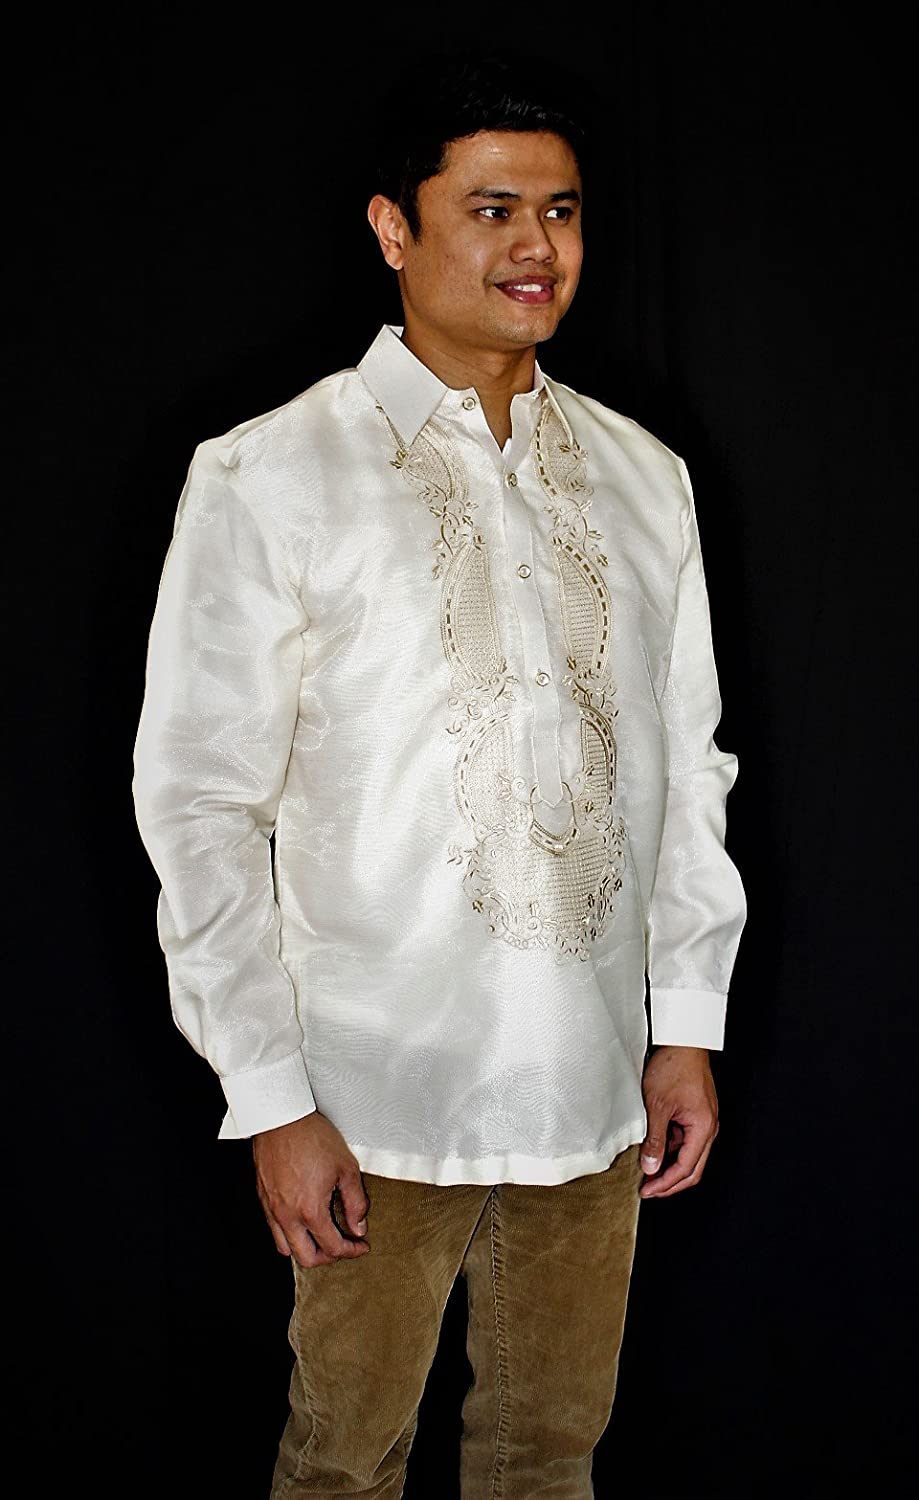 724fef6cedc Amazon.com  Barong Tagalog Philippine National Costume Formal Wear - Beige   Handmade